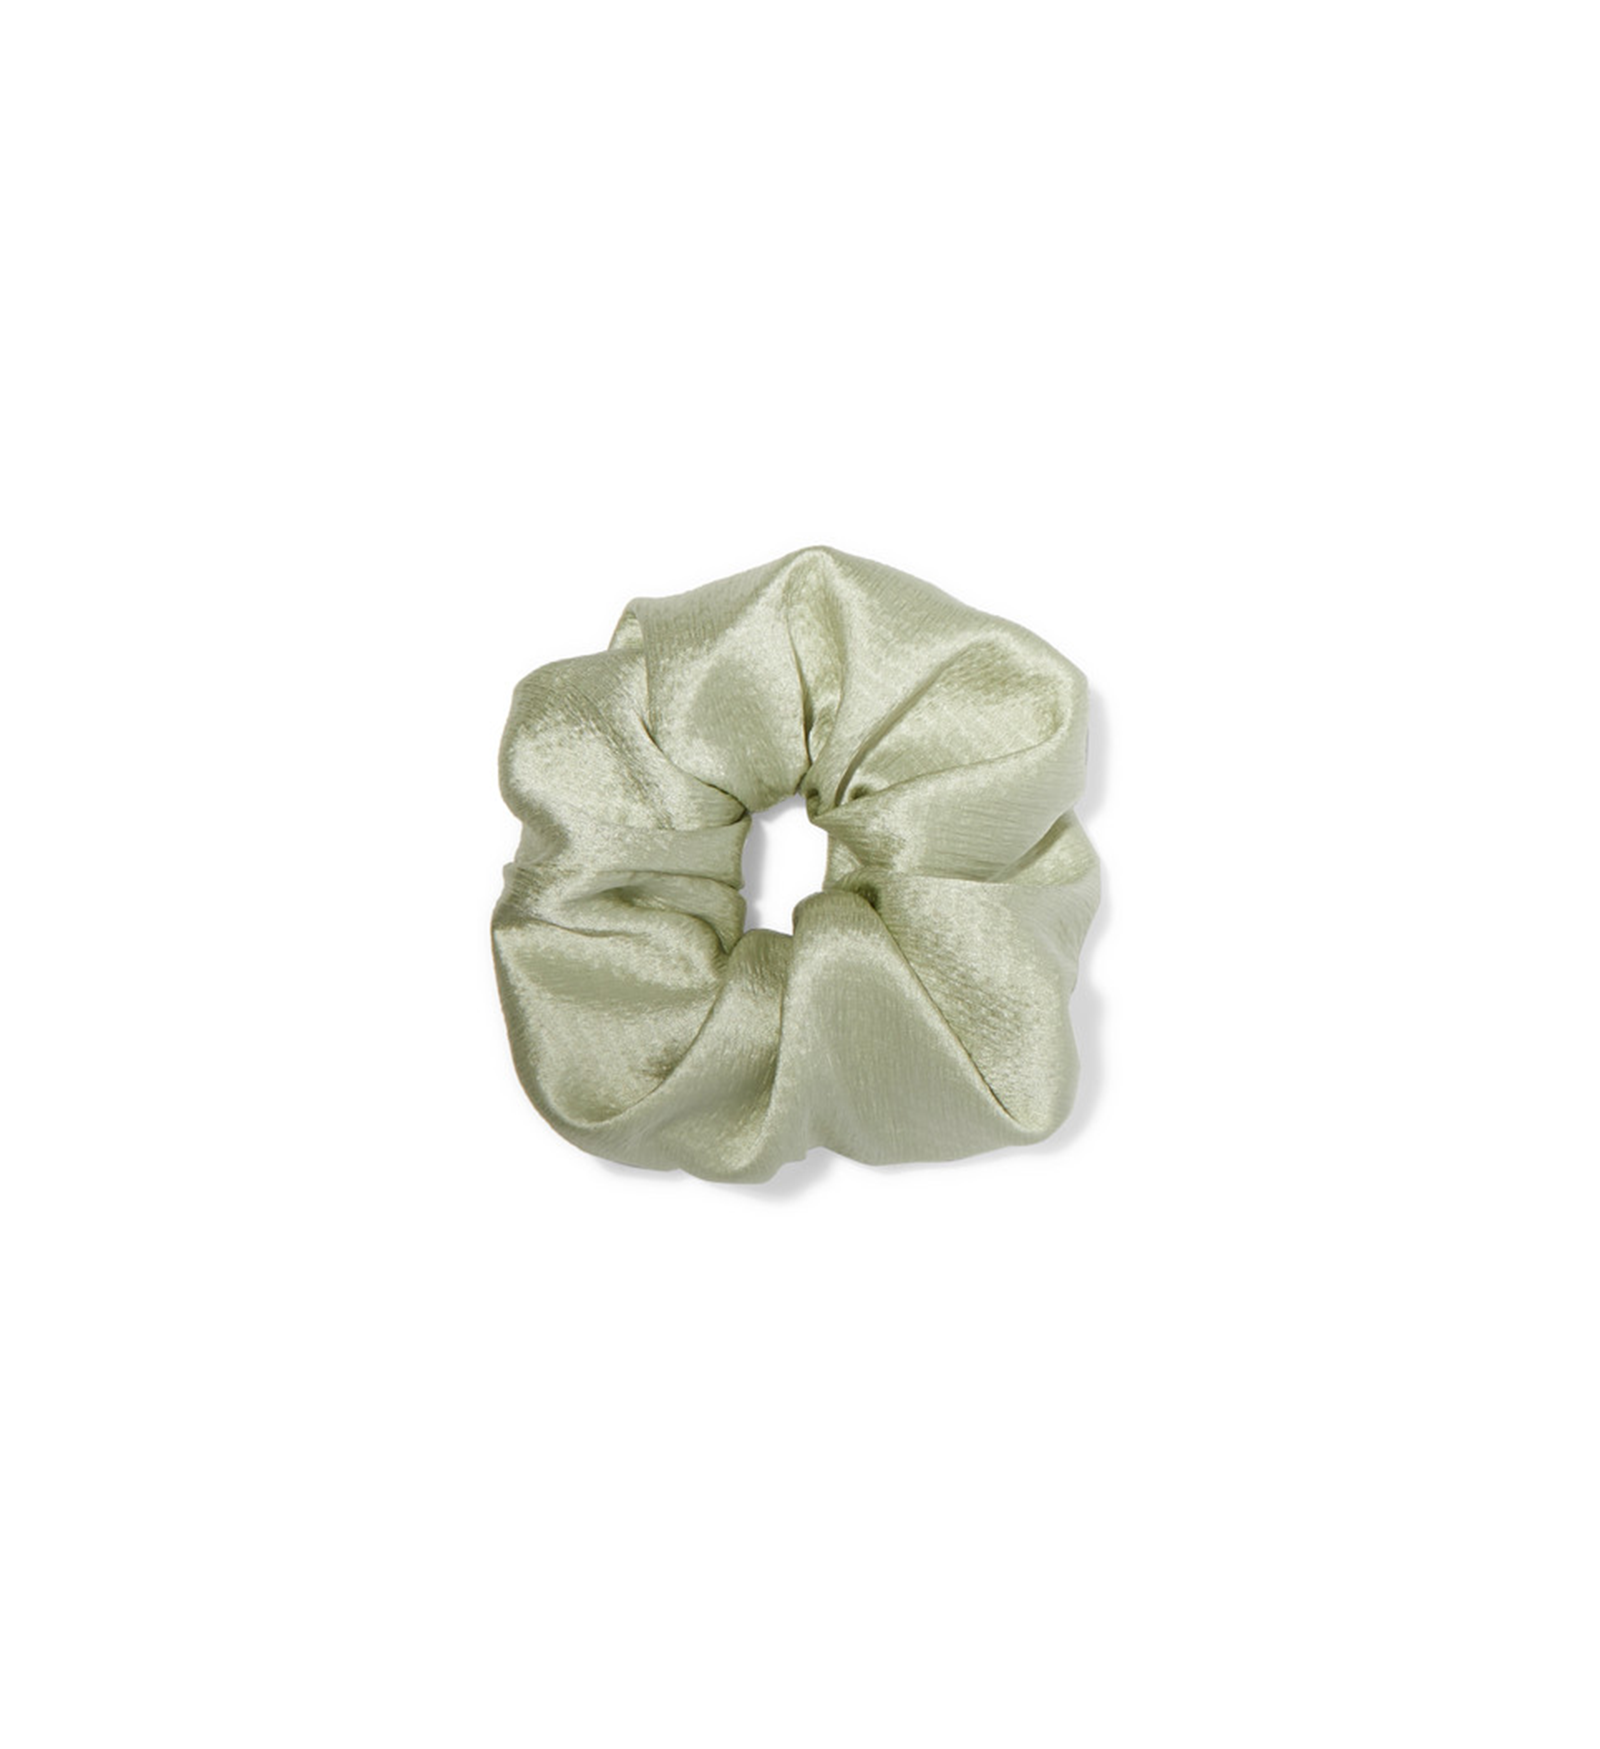 JF19_INT13_Artikel_Image_Hairstyle_Scrunchie_Revival_1600 × 1749_01.png